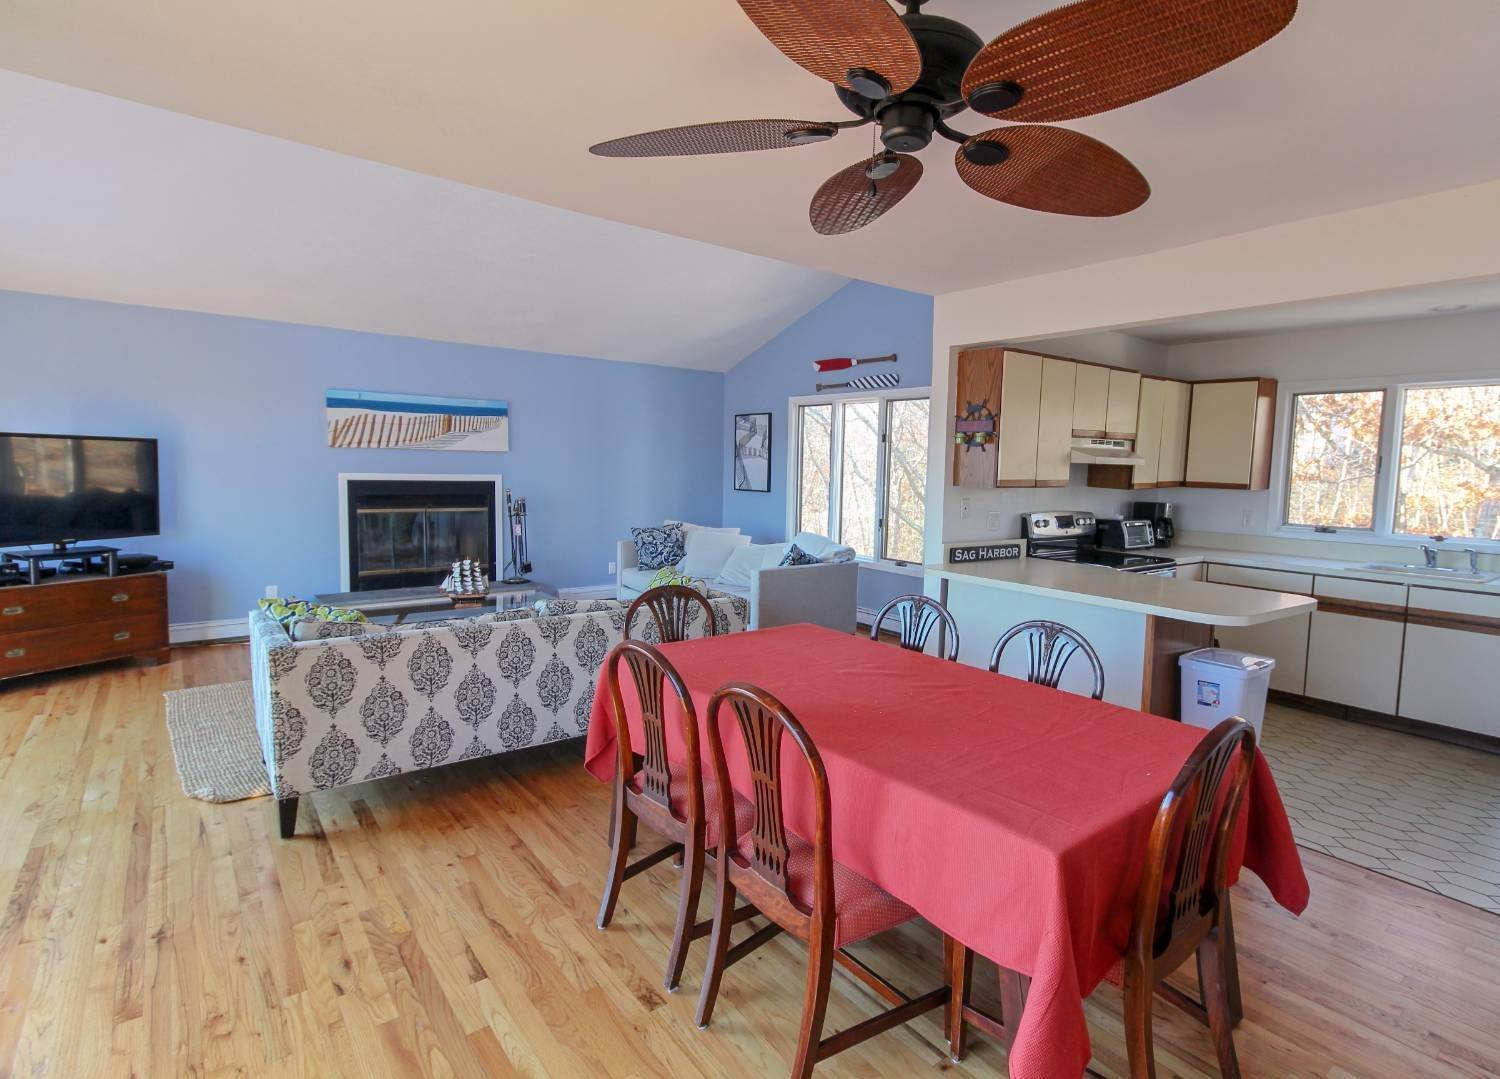 8. Single Family Home at Sag Harbor 4 Bedroom Close To Long Beach! Sag Harbor, NY 11963